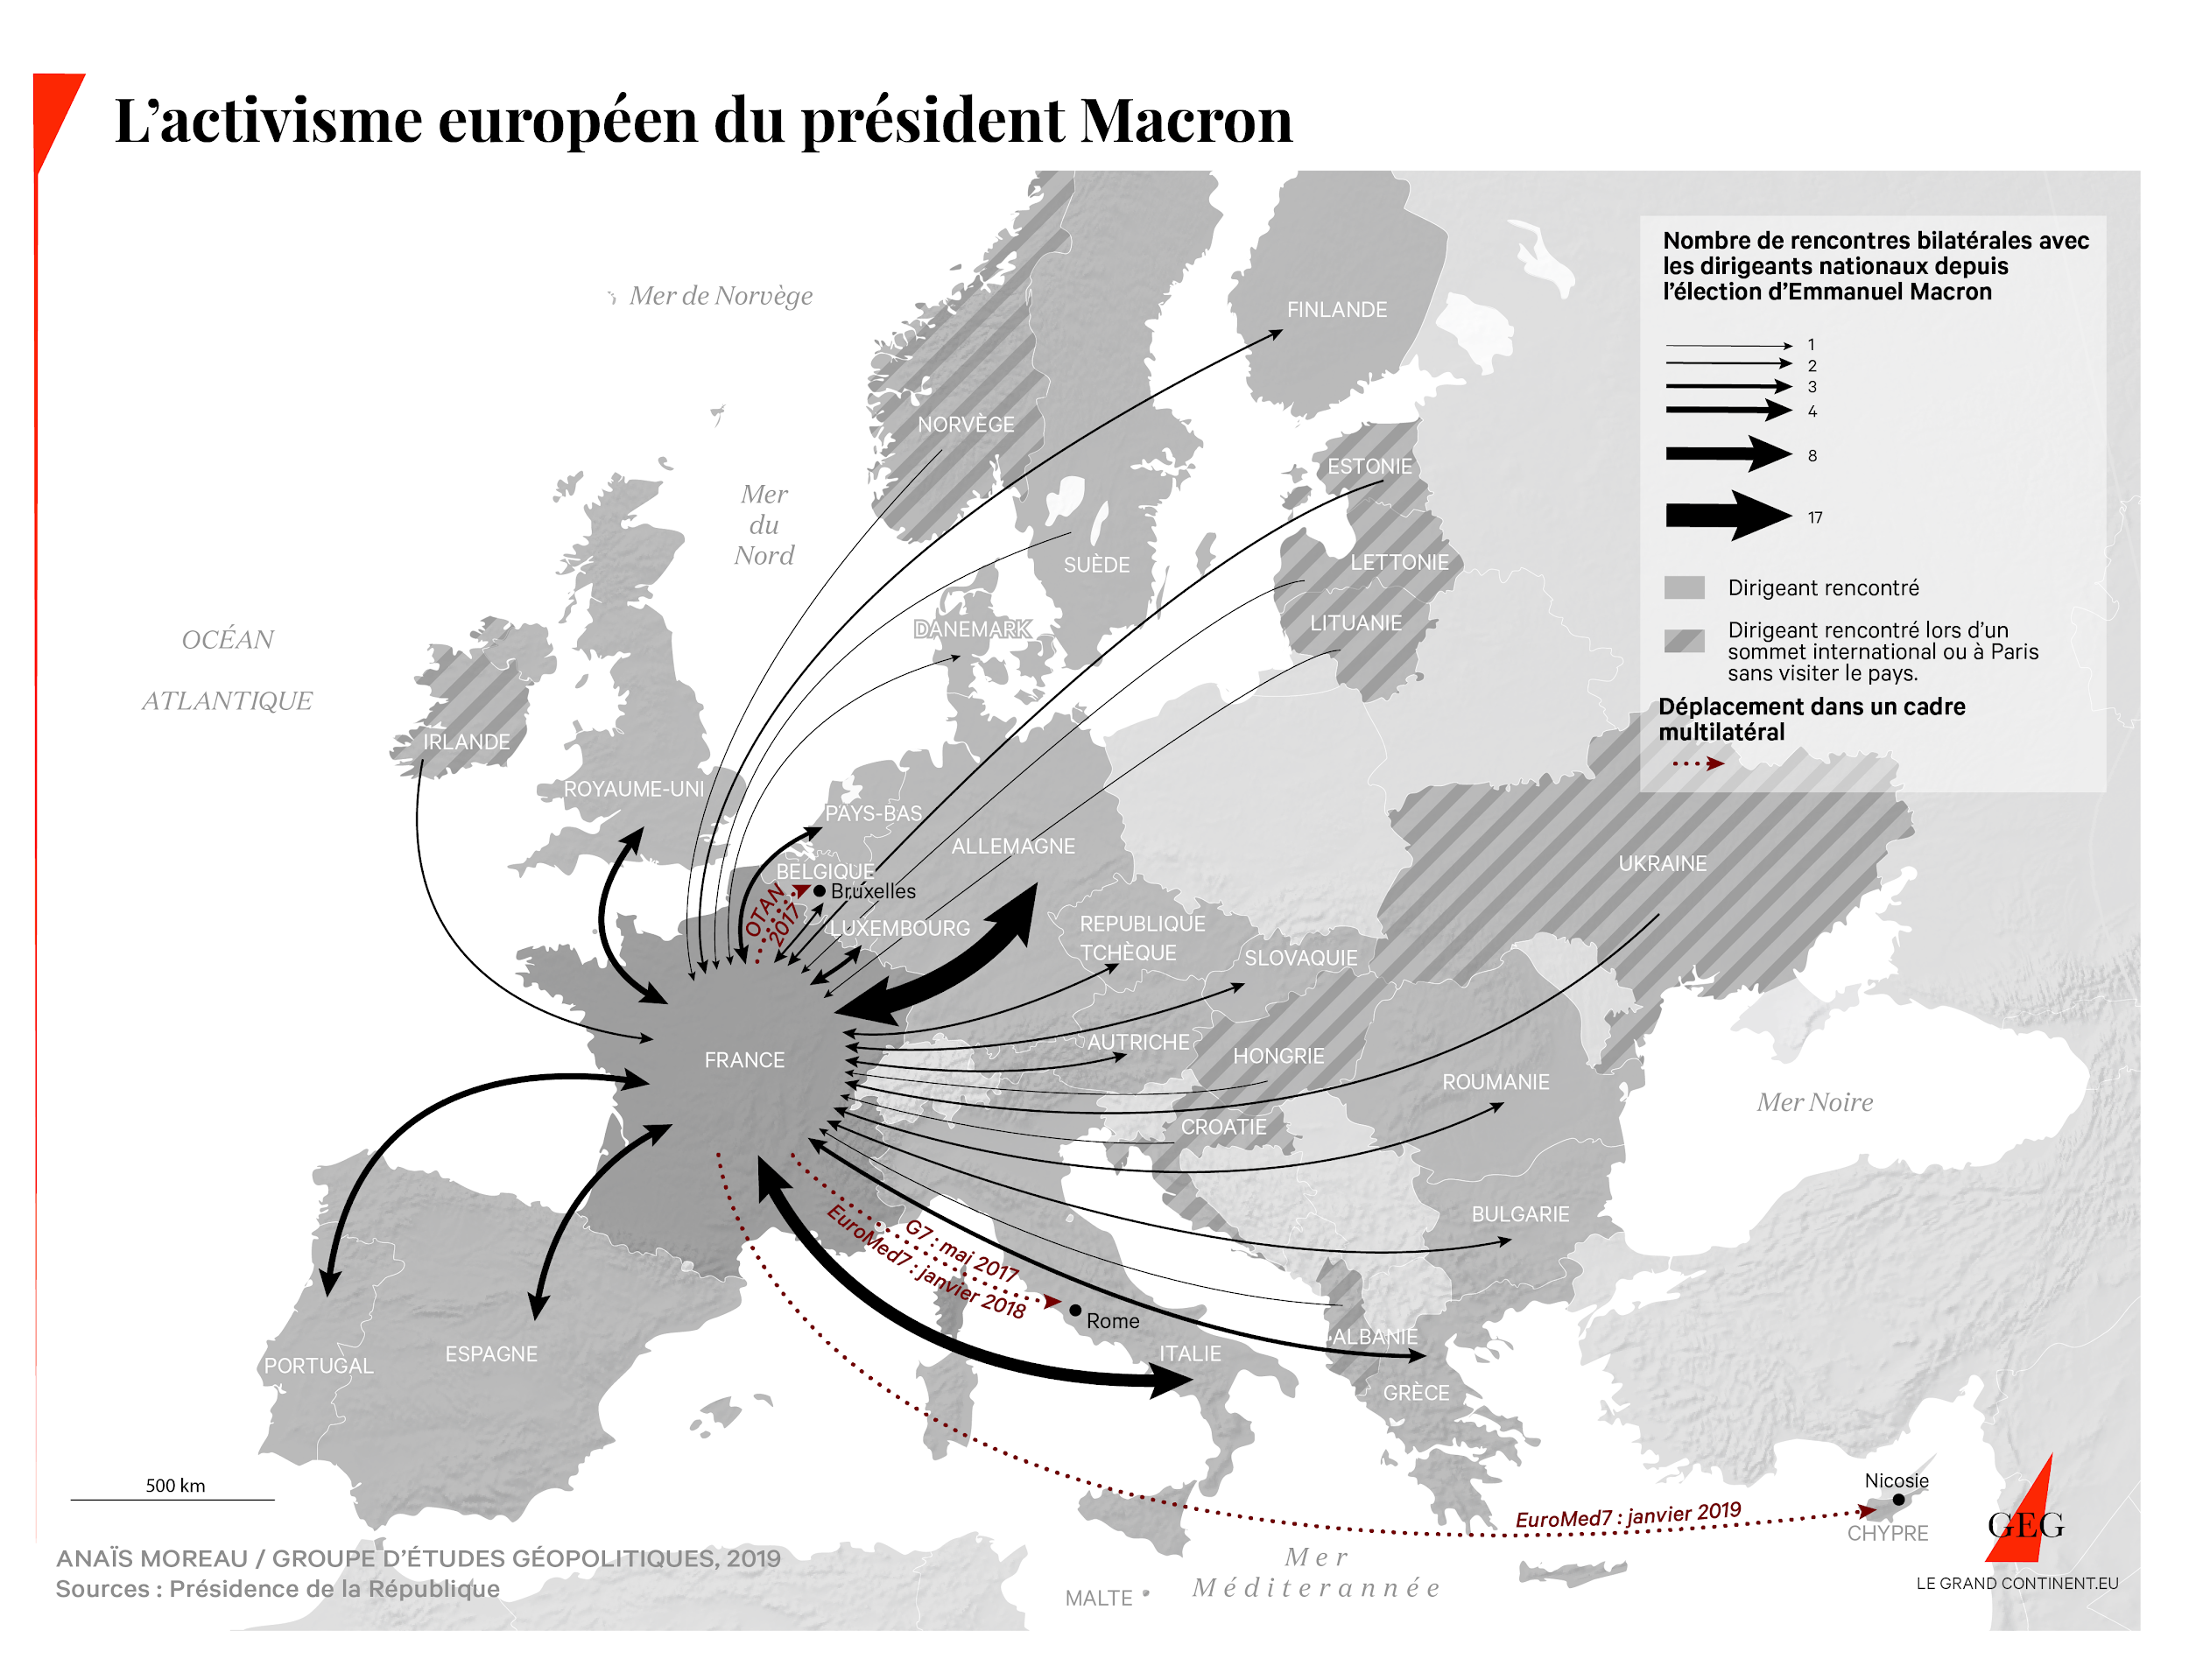 Map of President Macron's European activism (no. bilateral meetings with EU countries)